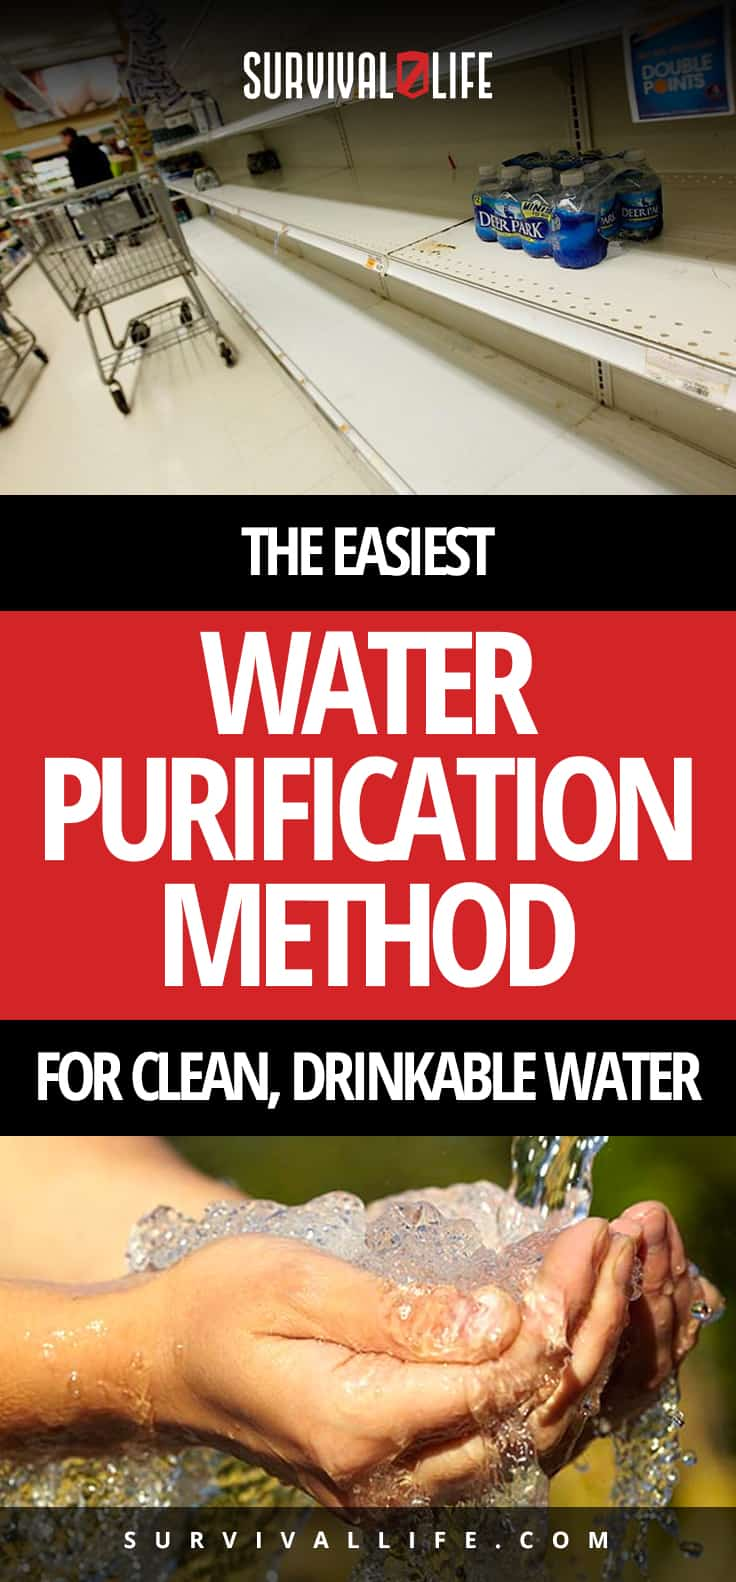 The Easiest Water Purification Method For Clean, Drinkable Water